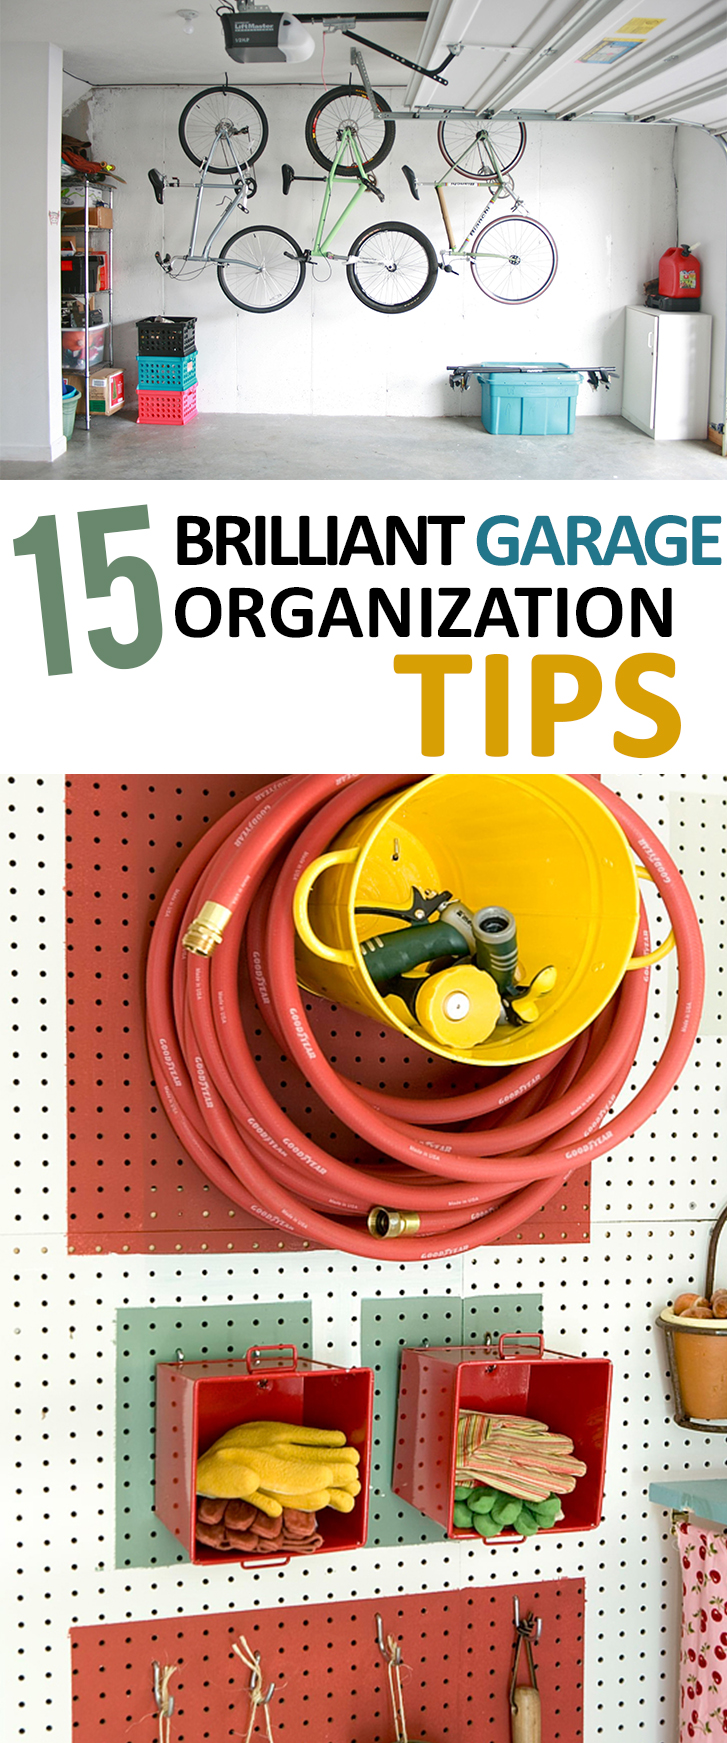 15 Brilliant Garage Organization Tips Sunlit Spaces Diy Home Decor Holiday And More